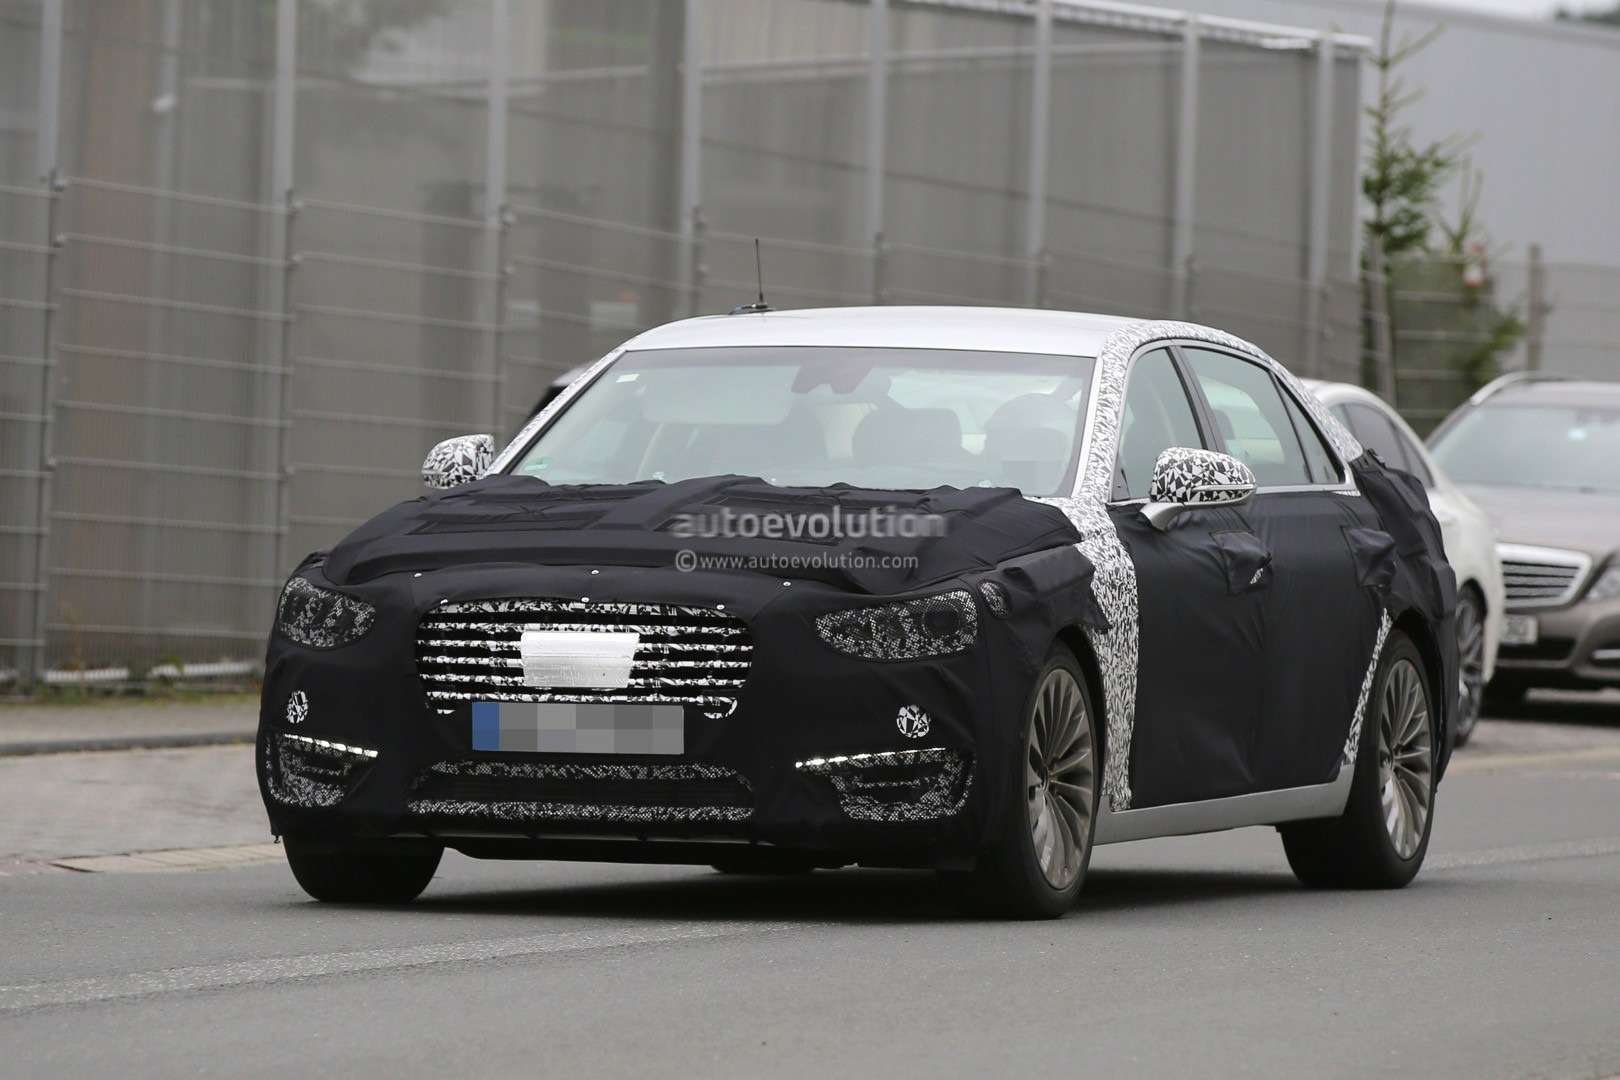 2017-hyundai-equus-spied-out-testing-in-germany-photo-gallery_8